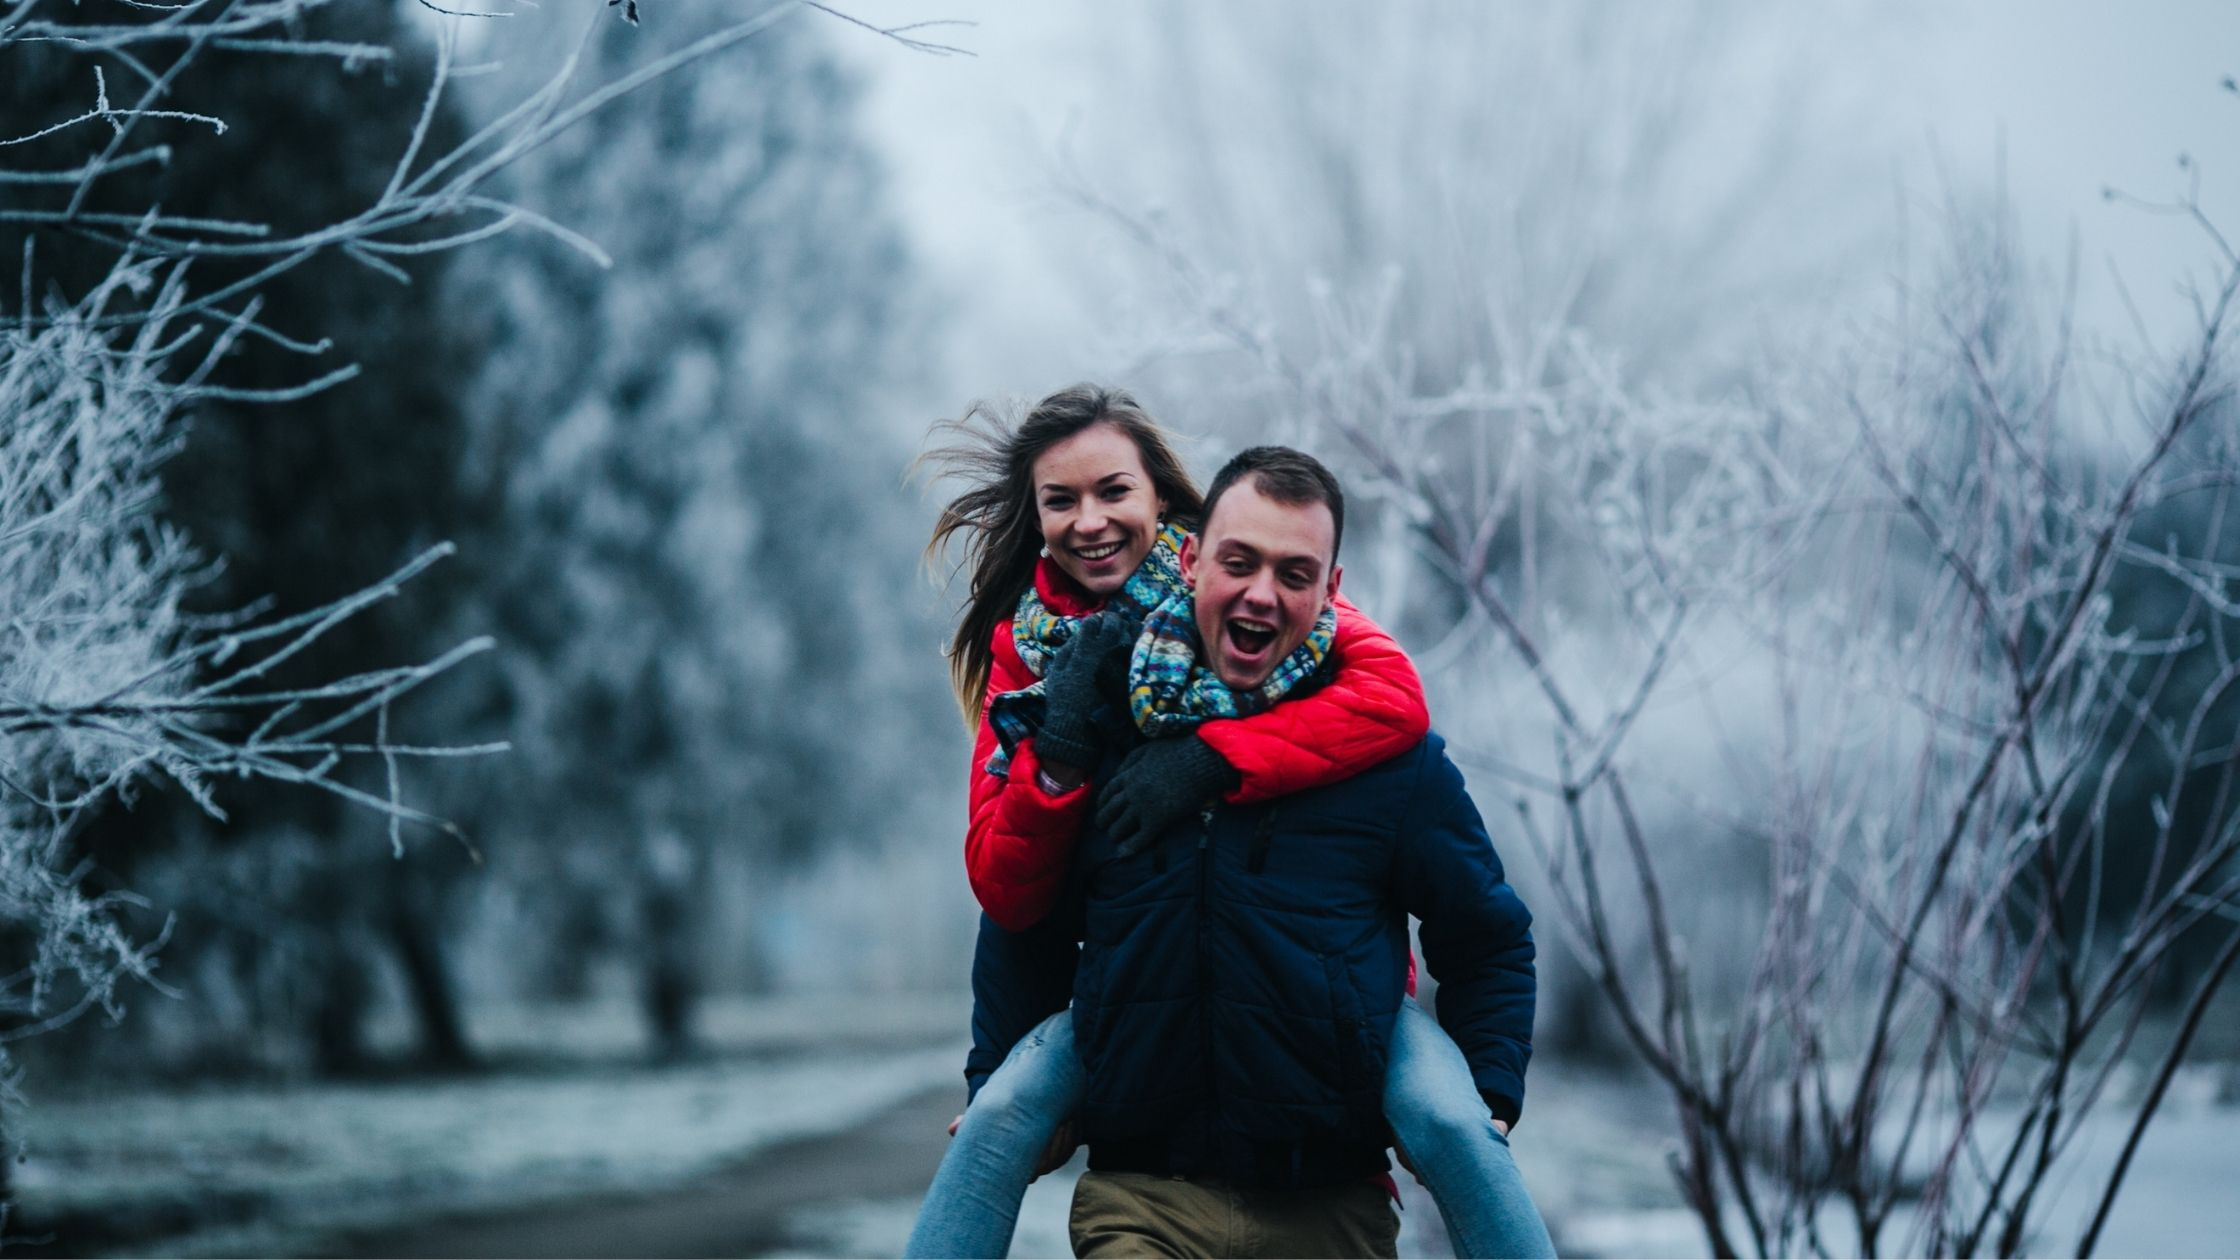 Winter-Friendly Activities for Preventing Cancer